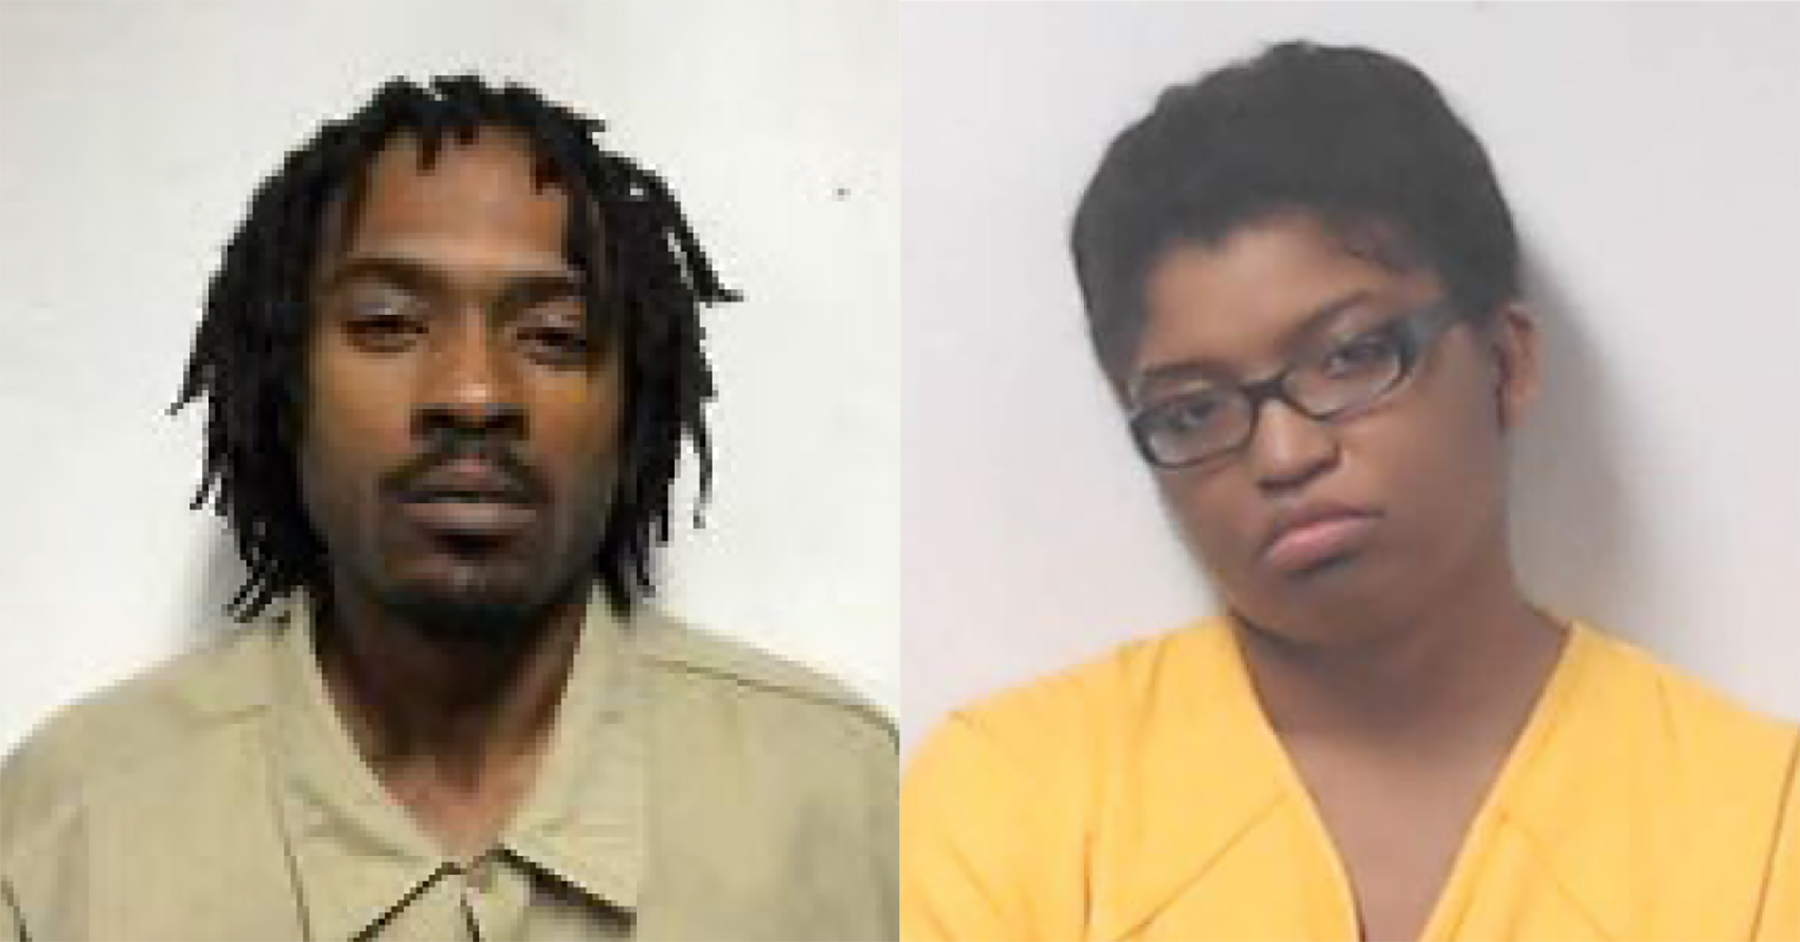 2 charged with capital murder in Moody police sergeant Williams' death